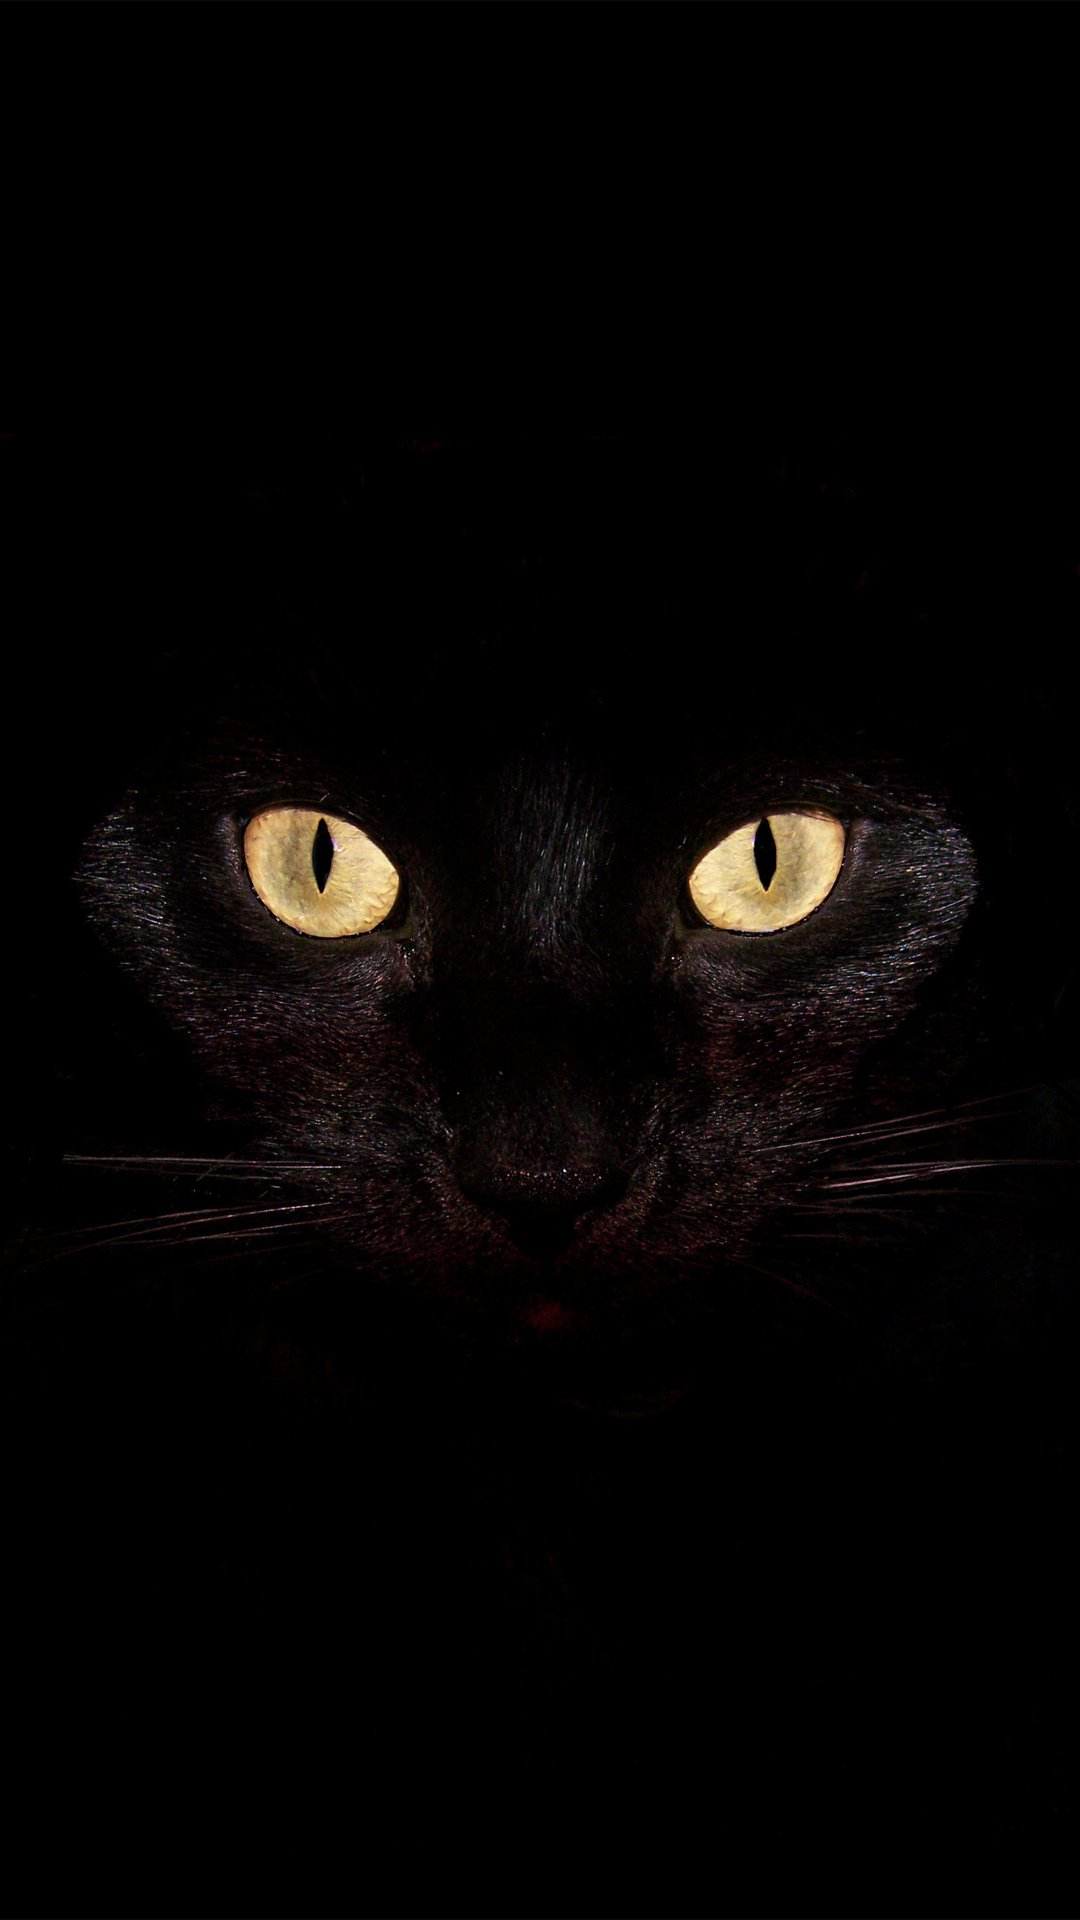 Black Cat Wallpaper For Android Wallpapersafari